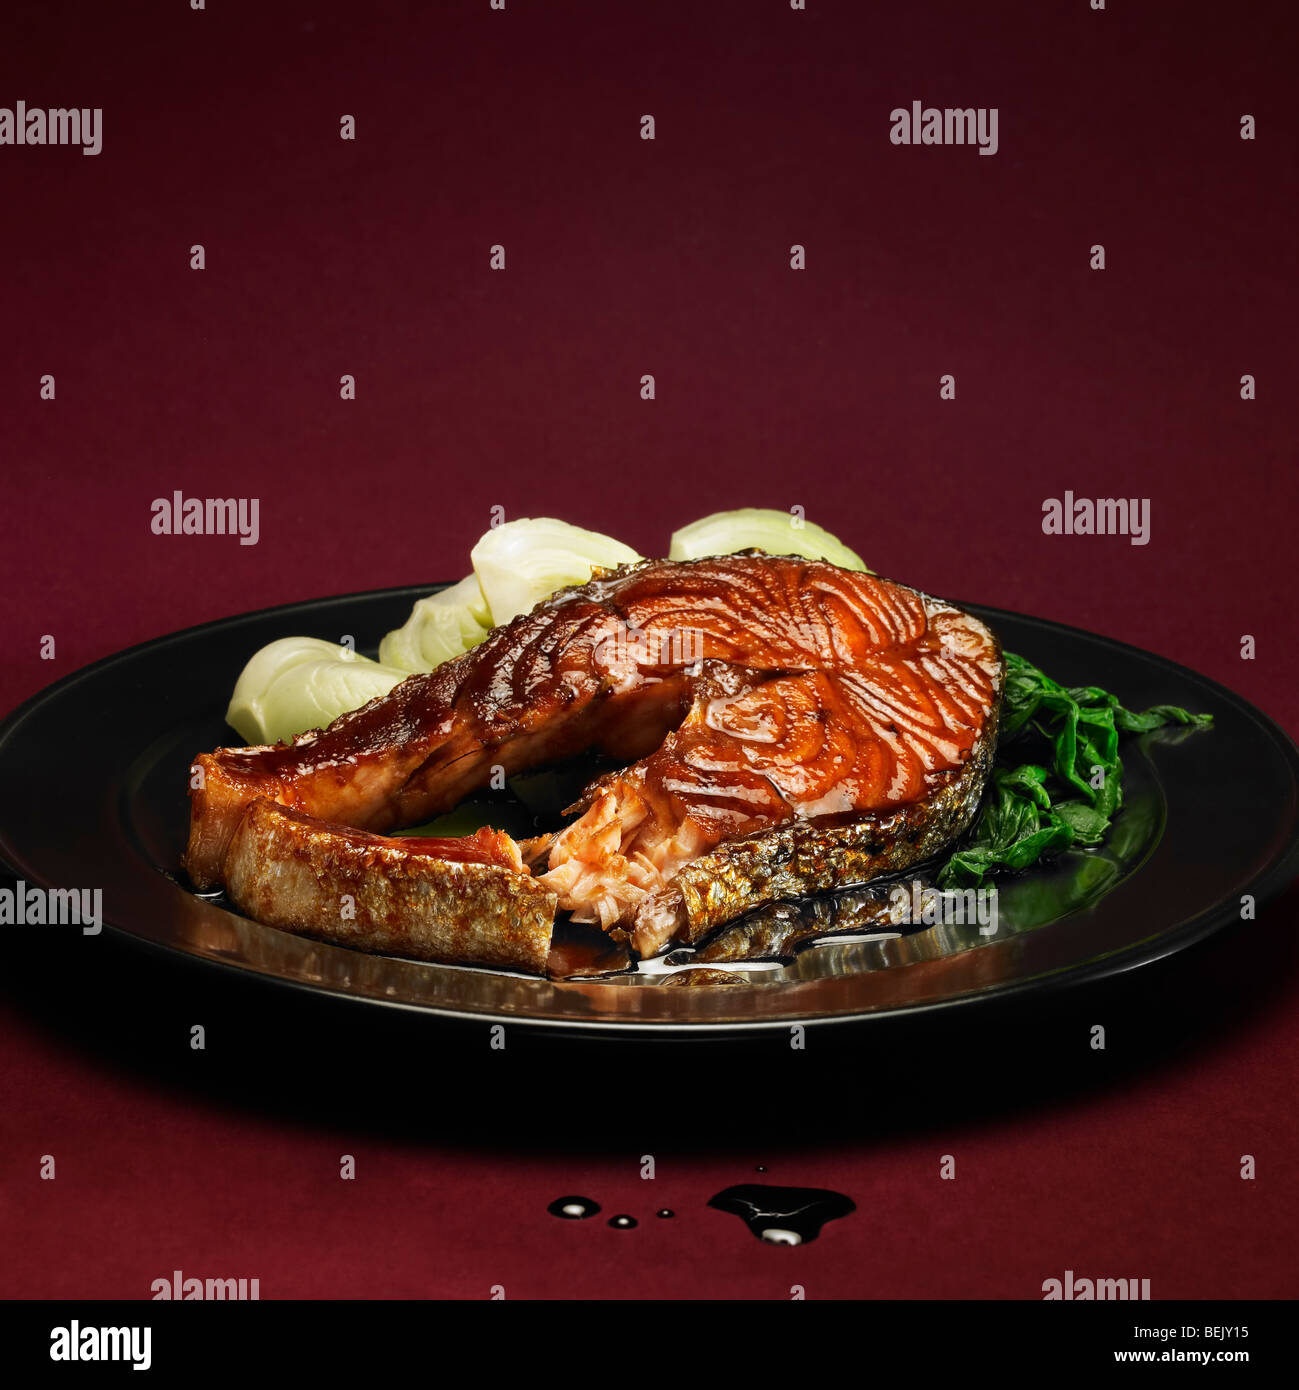 Grilled salmon with pak choi (bok choy) - Stock Image